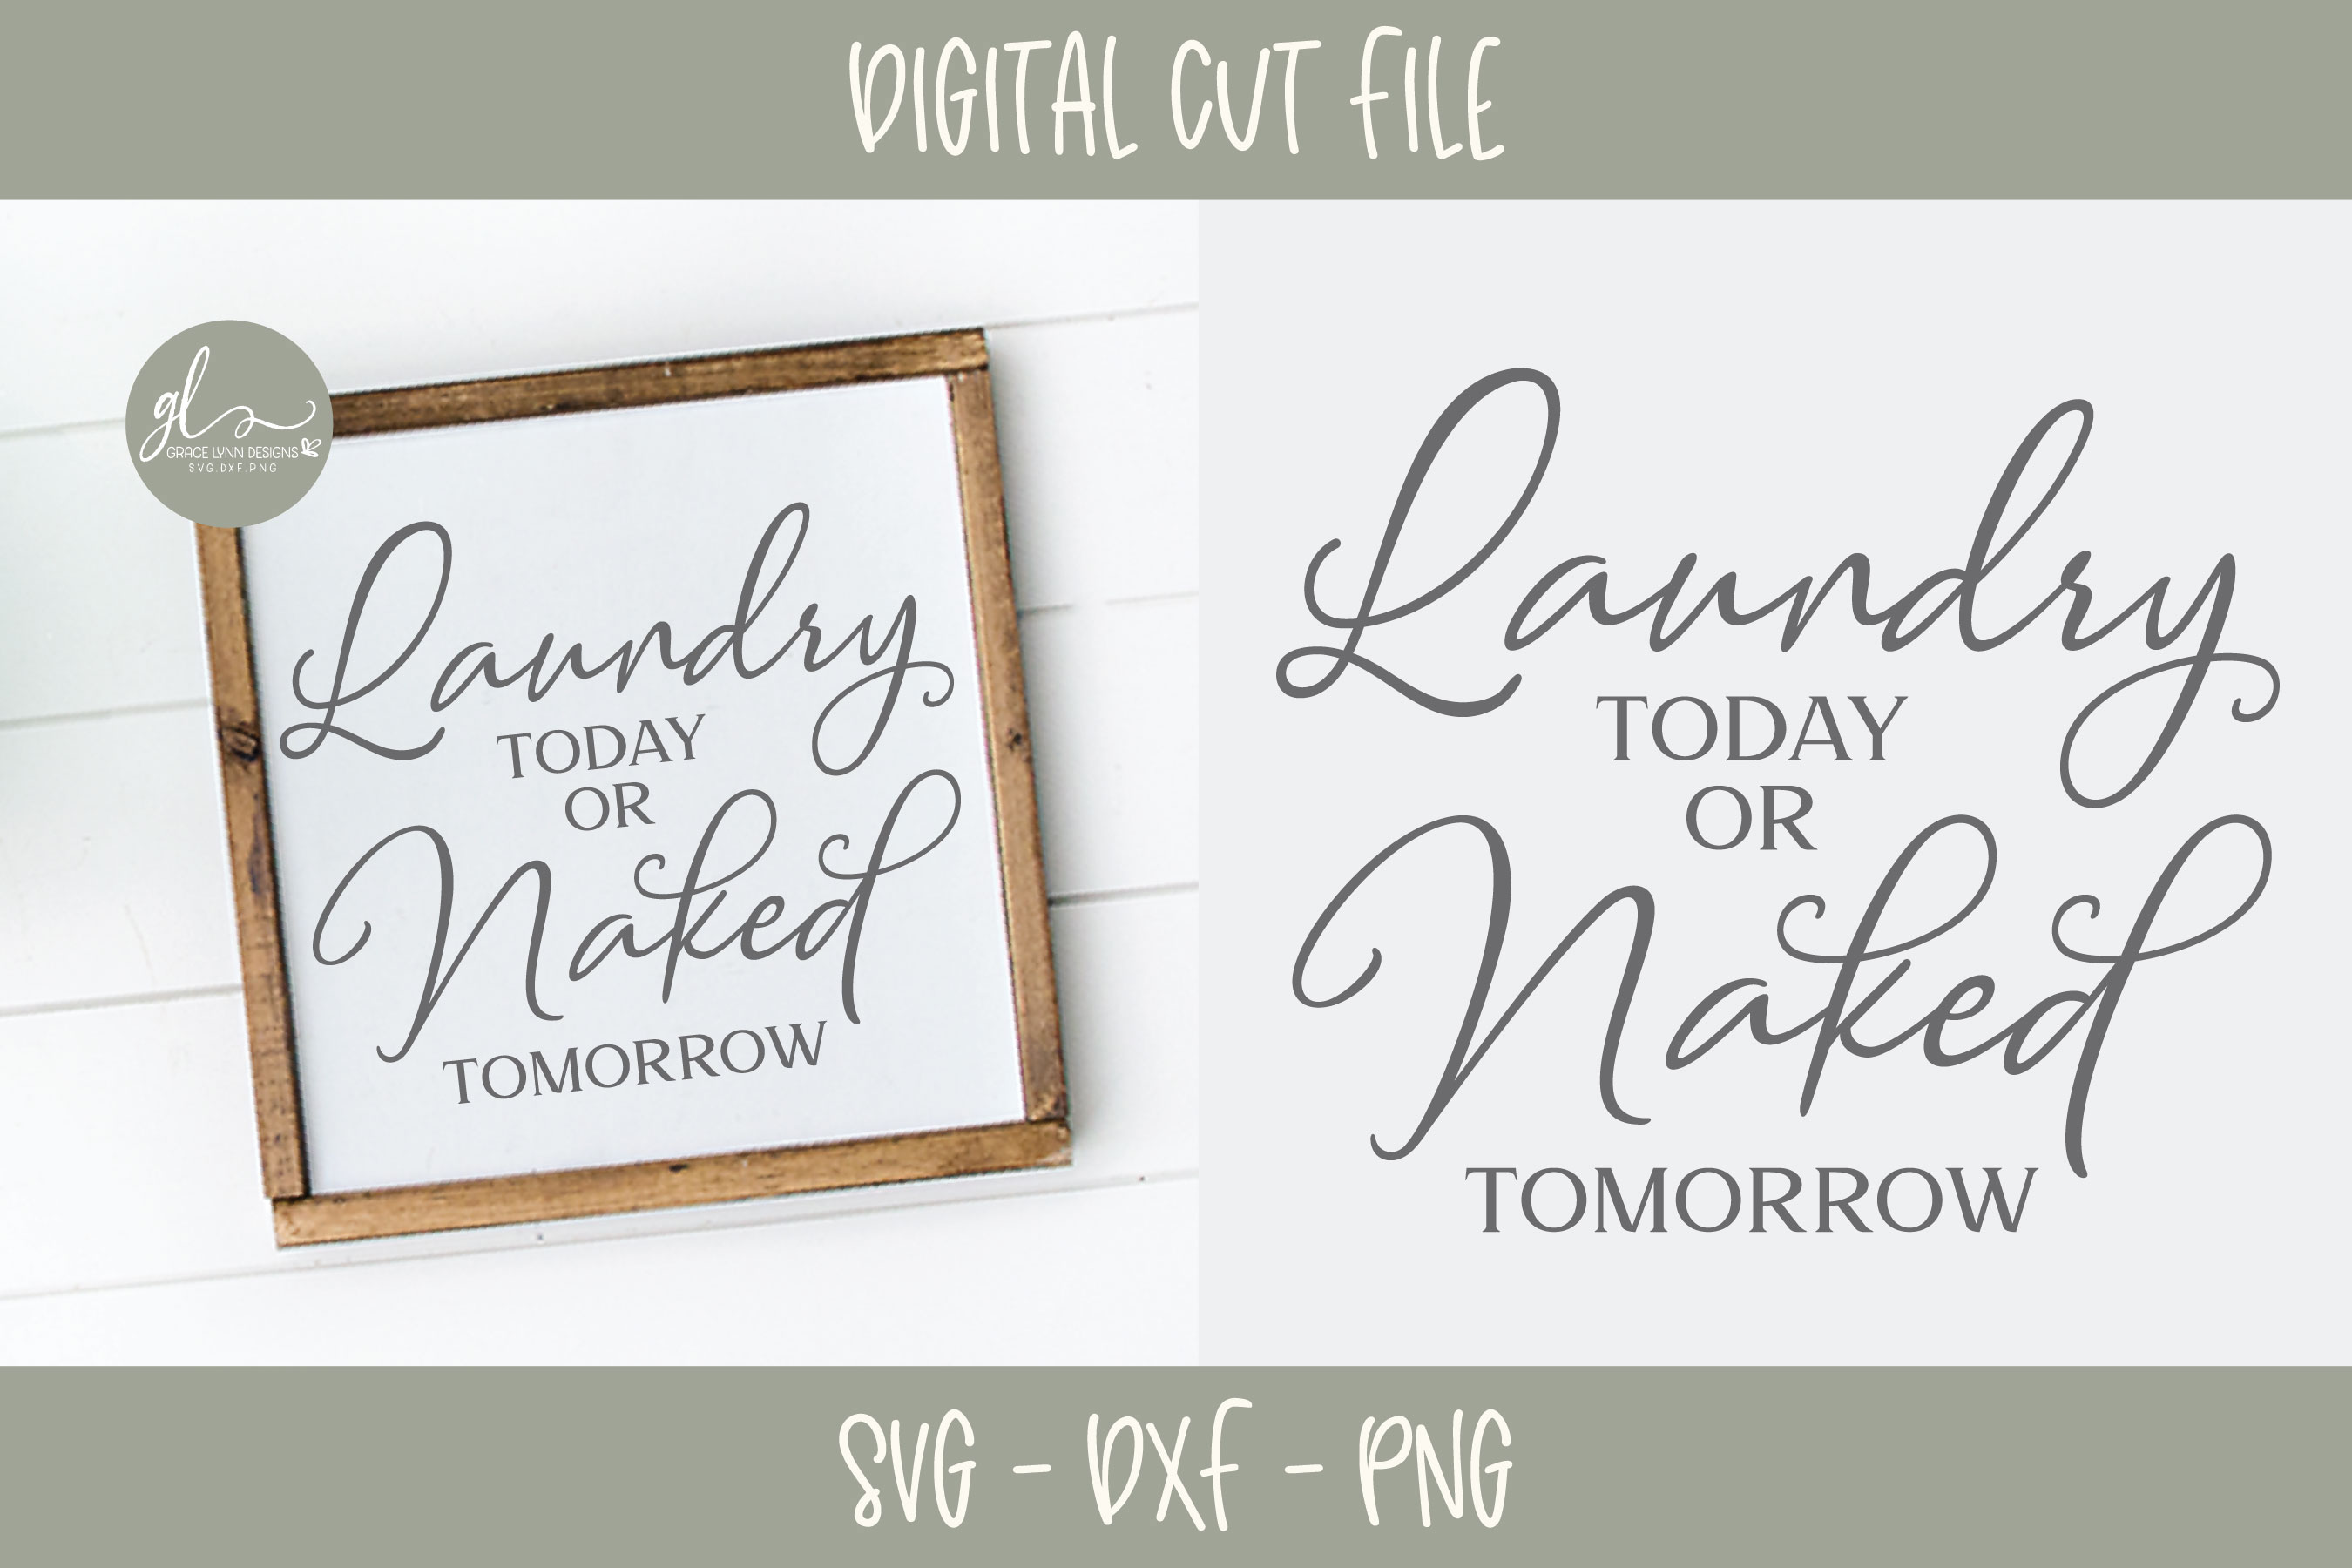 Laundry Today Or Naked Tomorrow - SVG Cut File example image 1